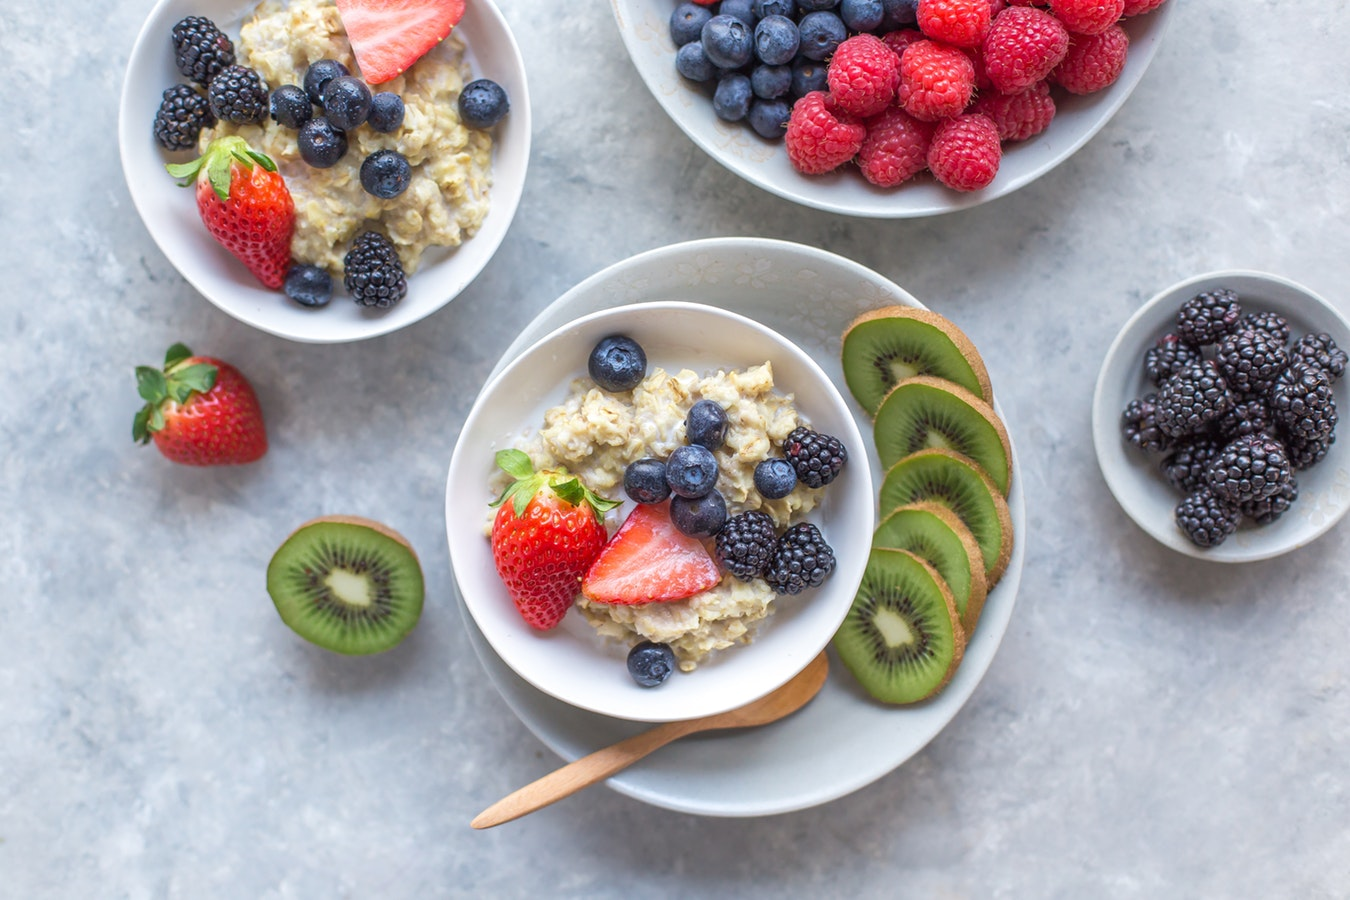 Bowls of fruit along side bowls of freshly made oatmeal are instrumental for ones cognitive health.